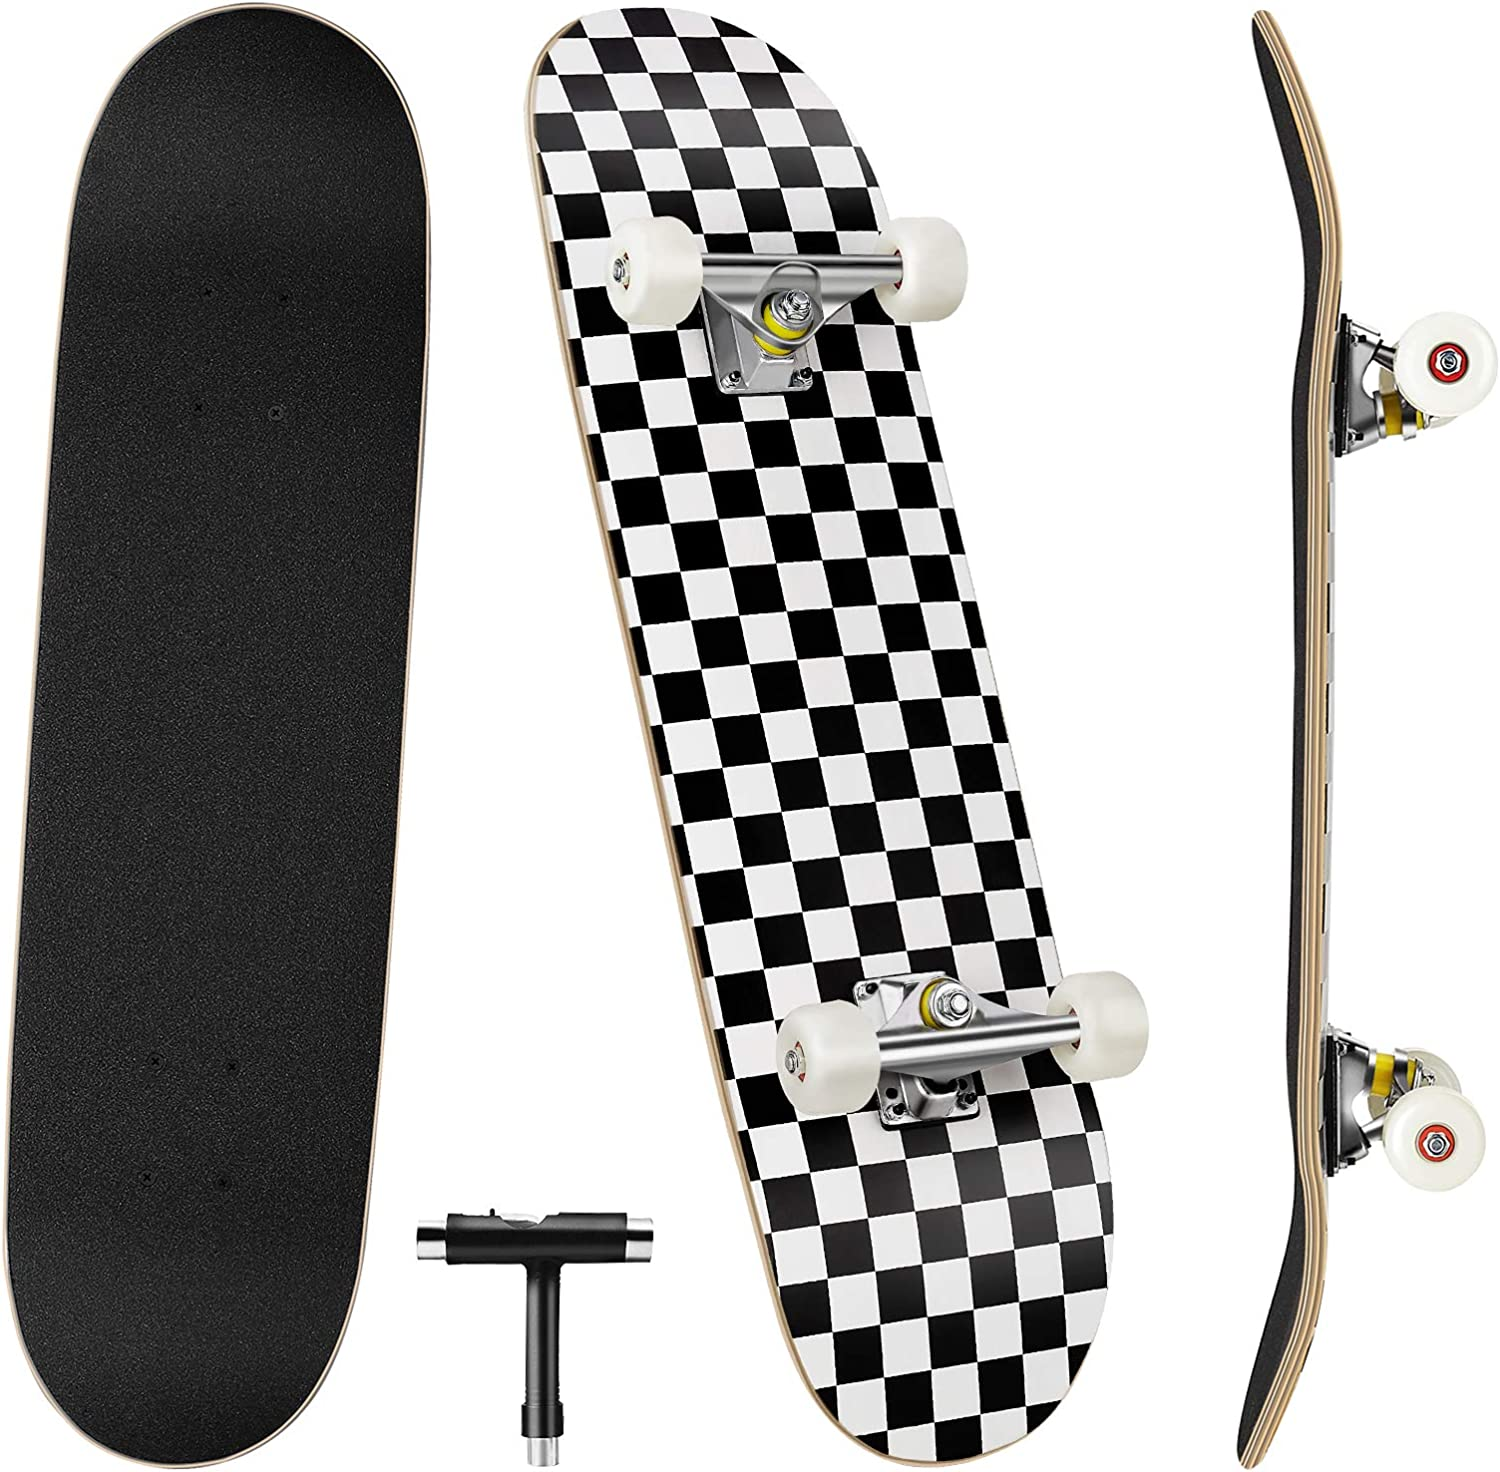 Skateboards, 31'' x 8'' Complete Standard Skateboards for Beginners with 7 Layers Canadian Maple, Double Kick Concave Skateboards for Kids Youth Teens Man and Women : Sports & Outdoors